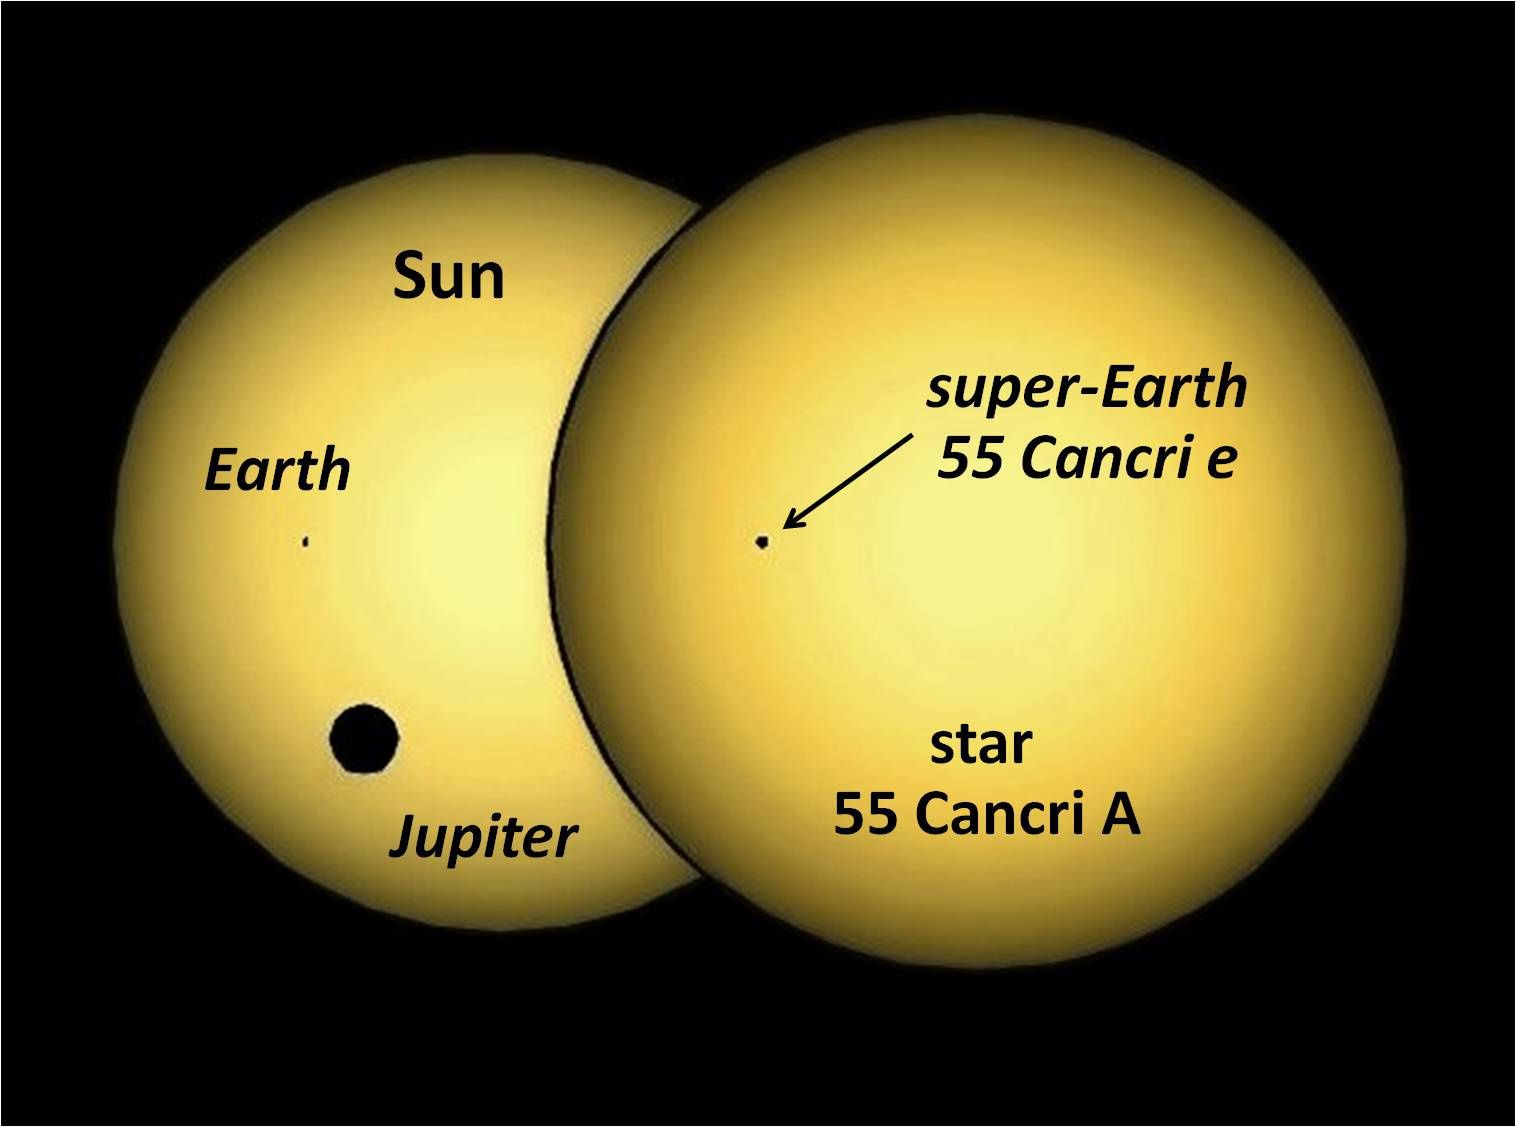 Transits sur le soleil et 55 Cancri A / passages respectifs de la Terre et Jupiter vs. celui de 55 Cancri e - Credit : Jason Rowe / NASA Ames and SETI Institute and Jaymie Matthews /UBC